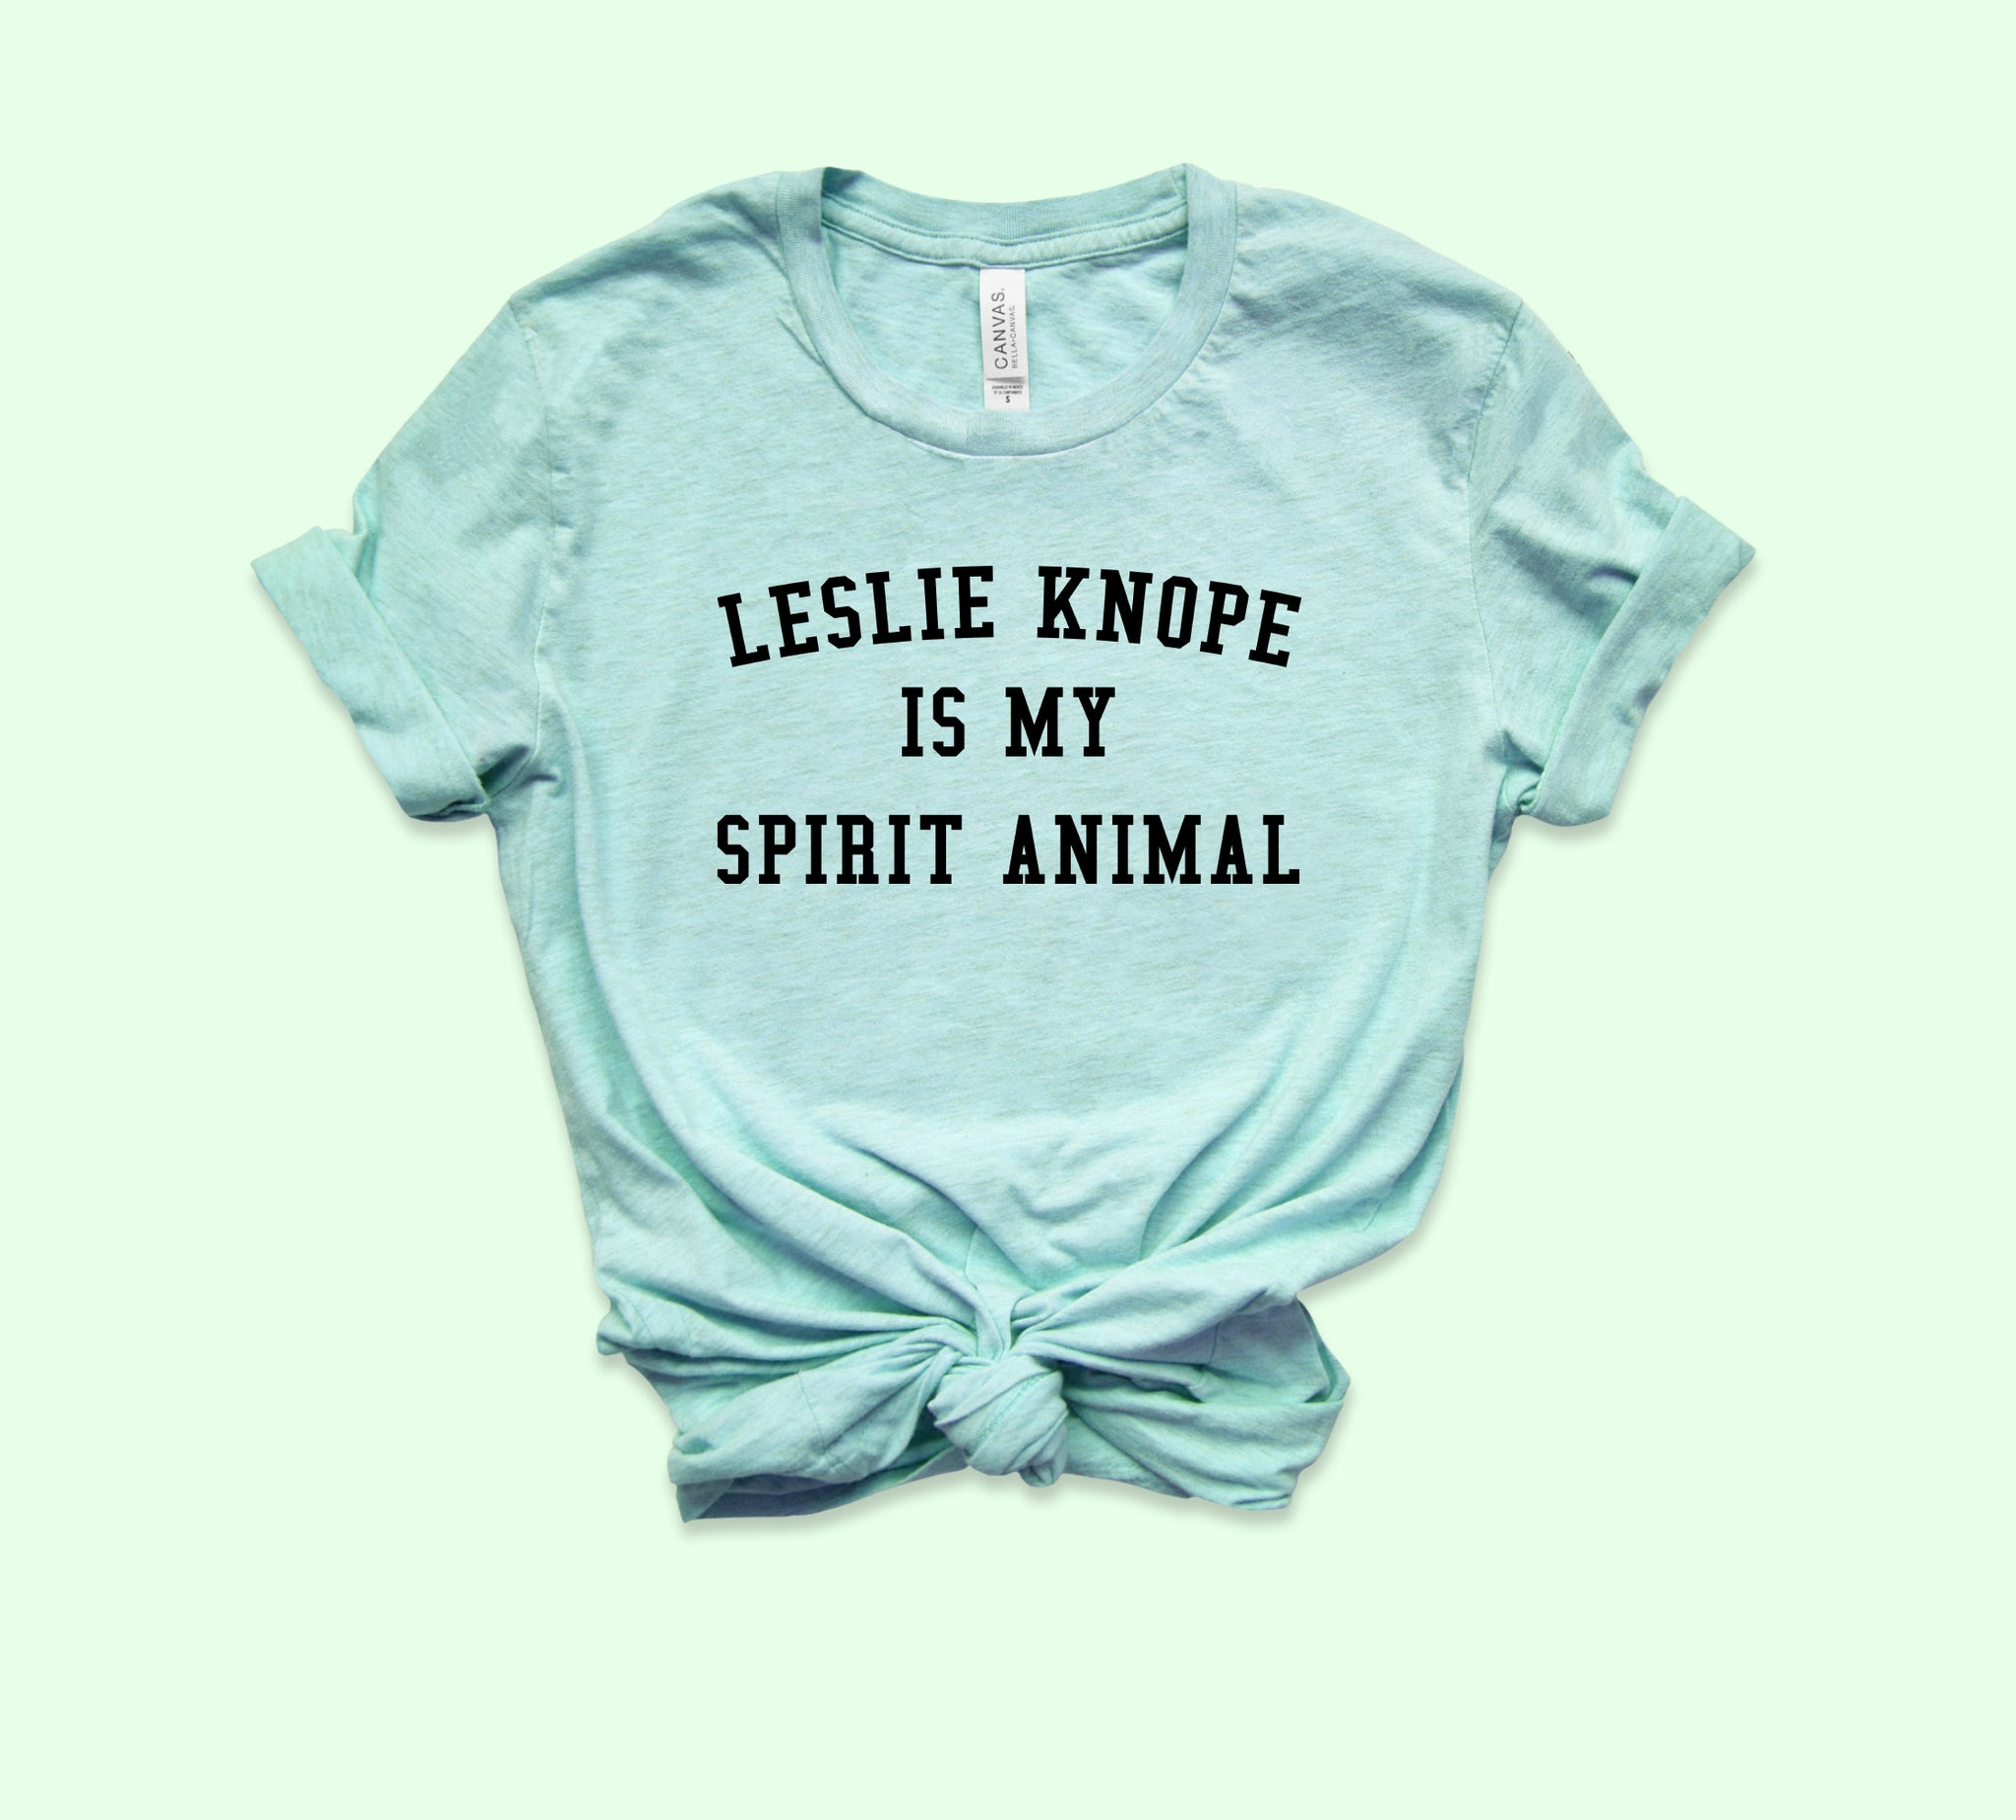 Leslie Knope Is My Spirit Animal Shirt